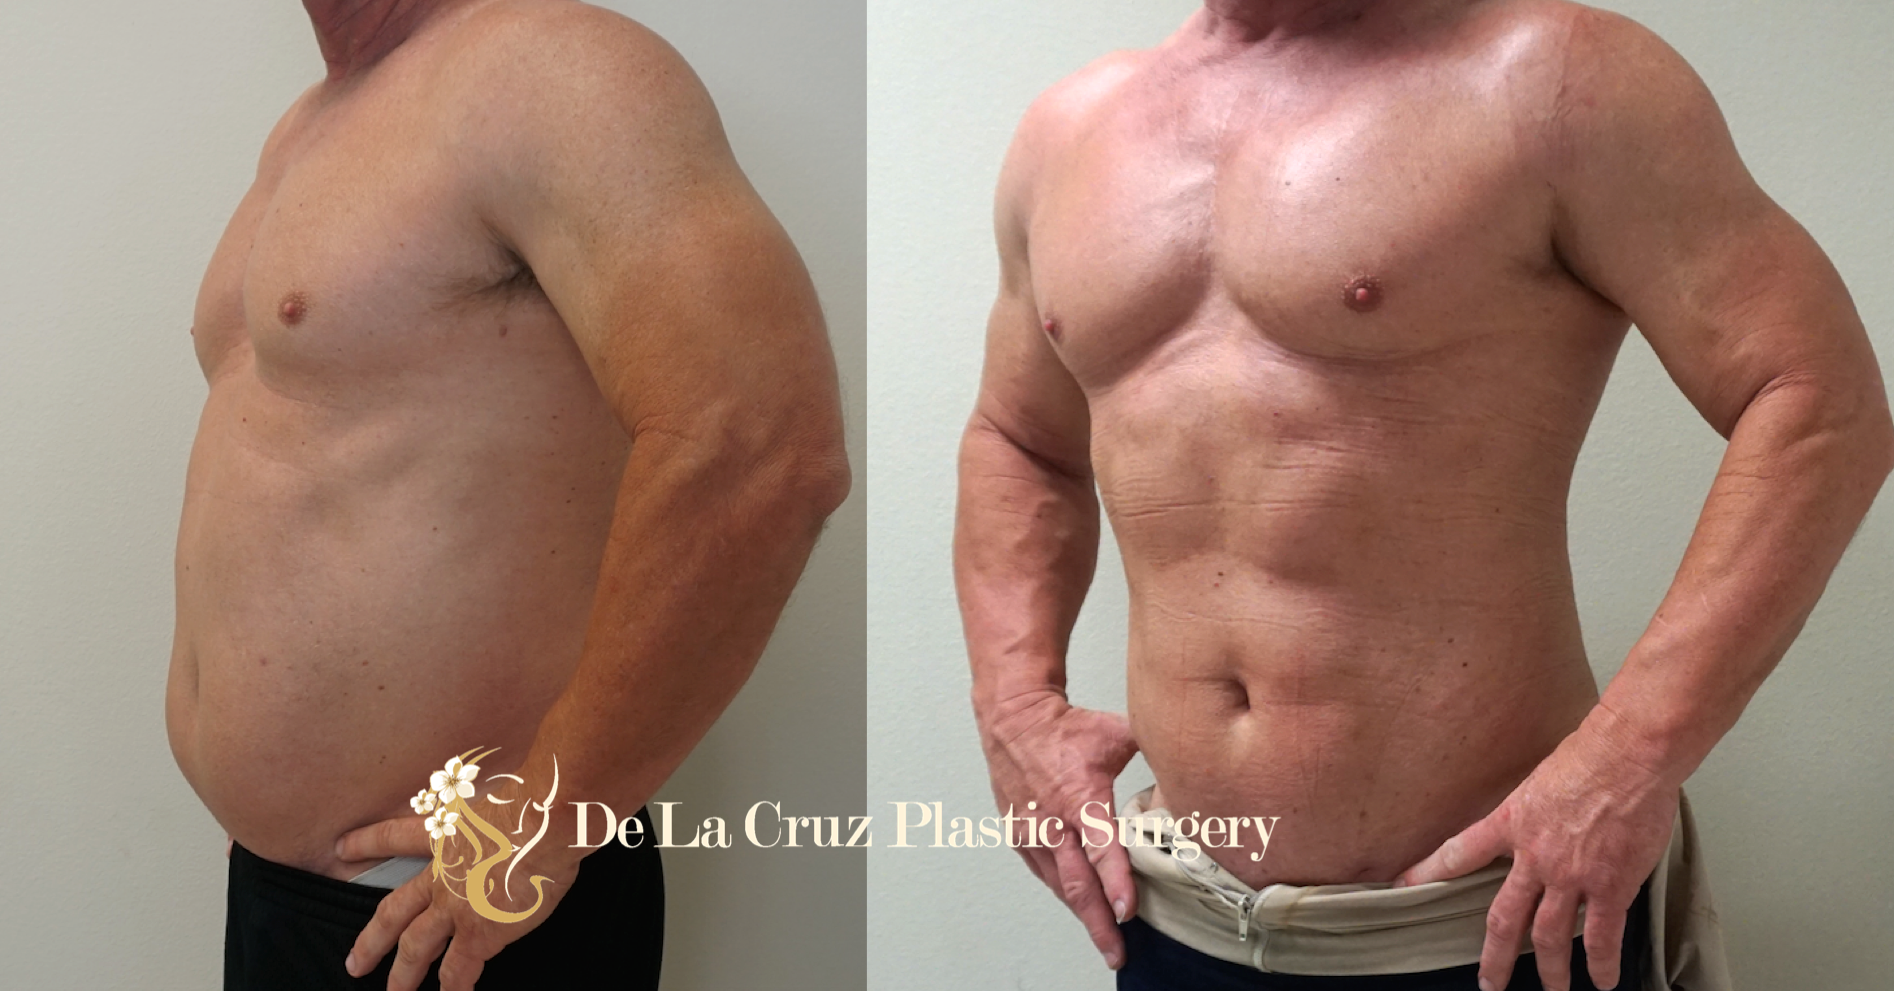 Before & After Liposuction (  4D VASER High-Definition Liposuction  ; 7 weeks after surgery) performed by Houston Plastic Surgeon Emmanuel De La Cruz MD